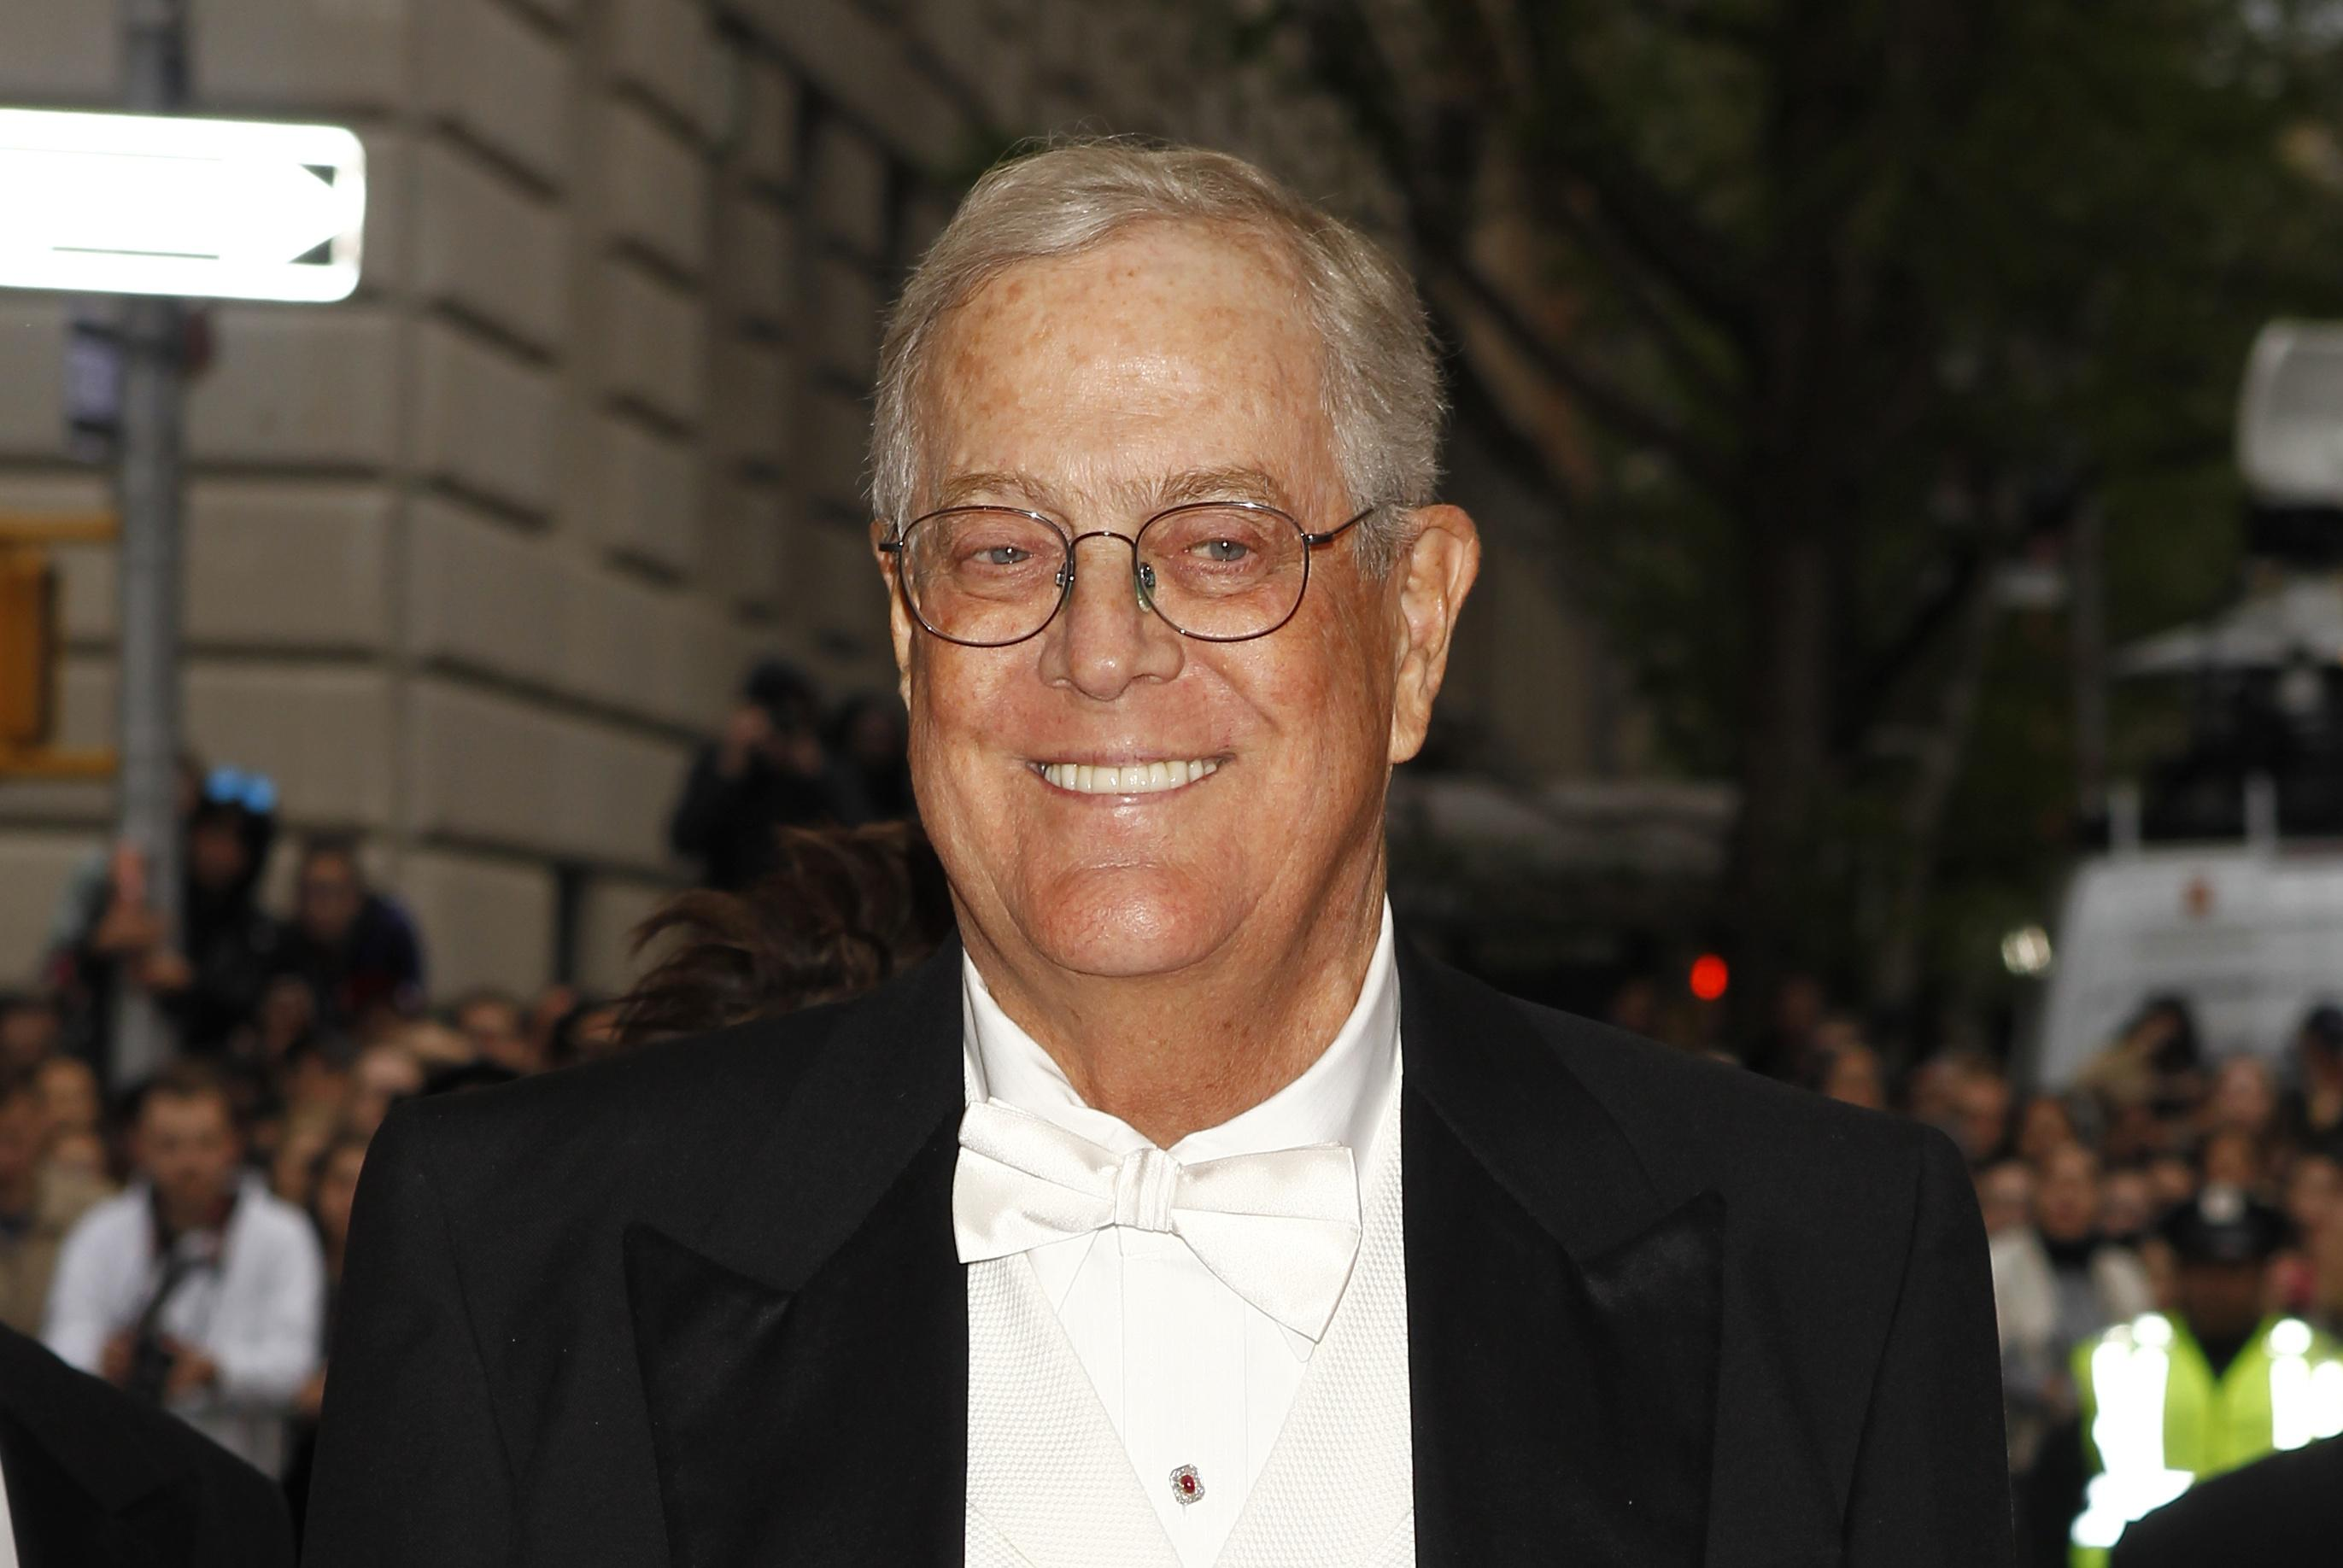 Conservative icon David Koch leaving business, politics › Medicine Hat News